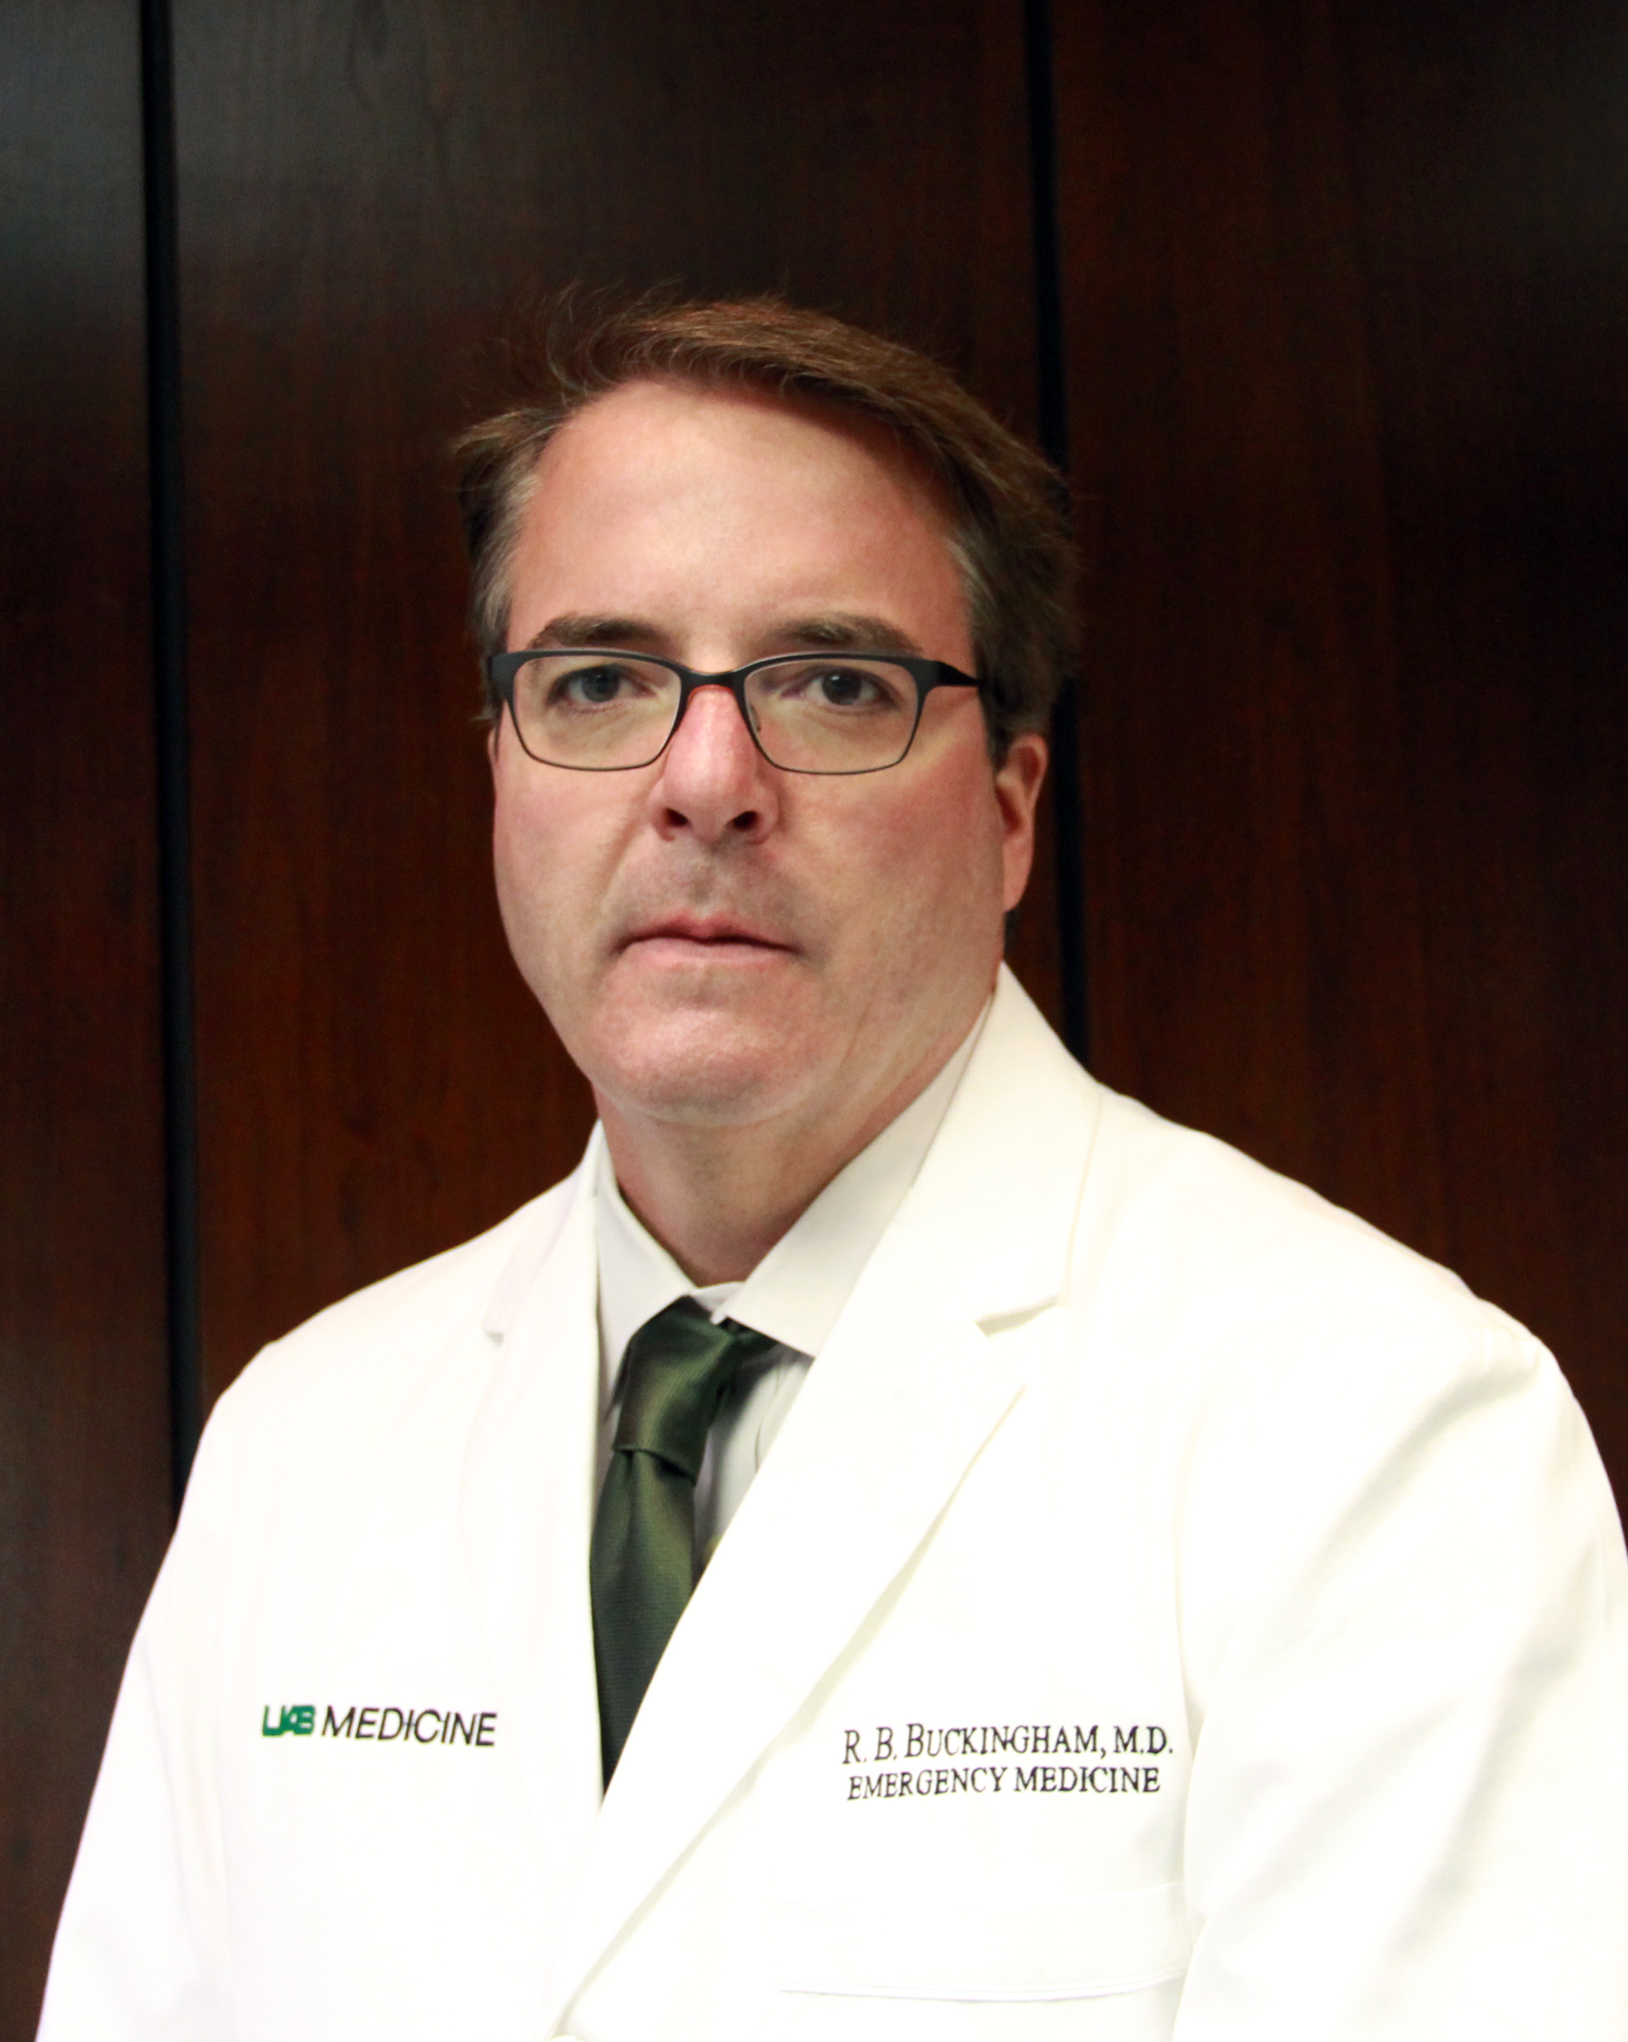 Robert B. Buckingham, MD